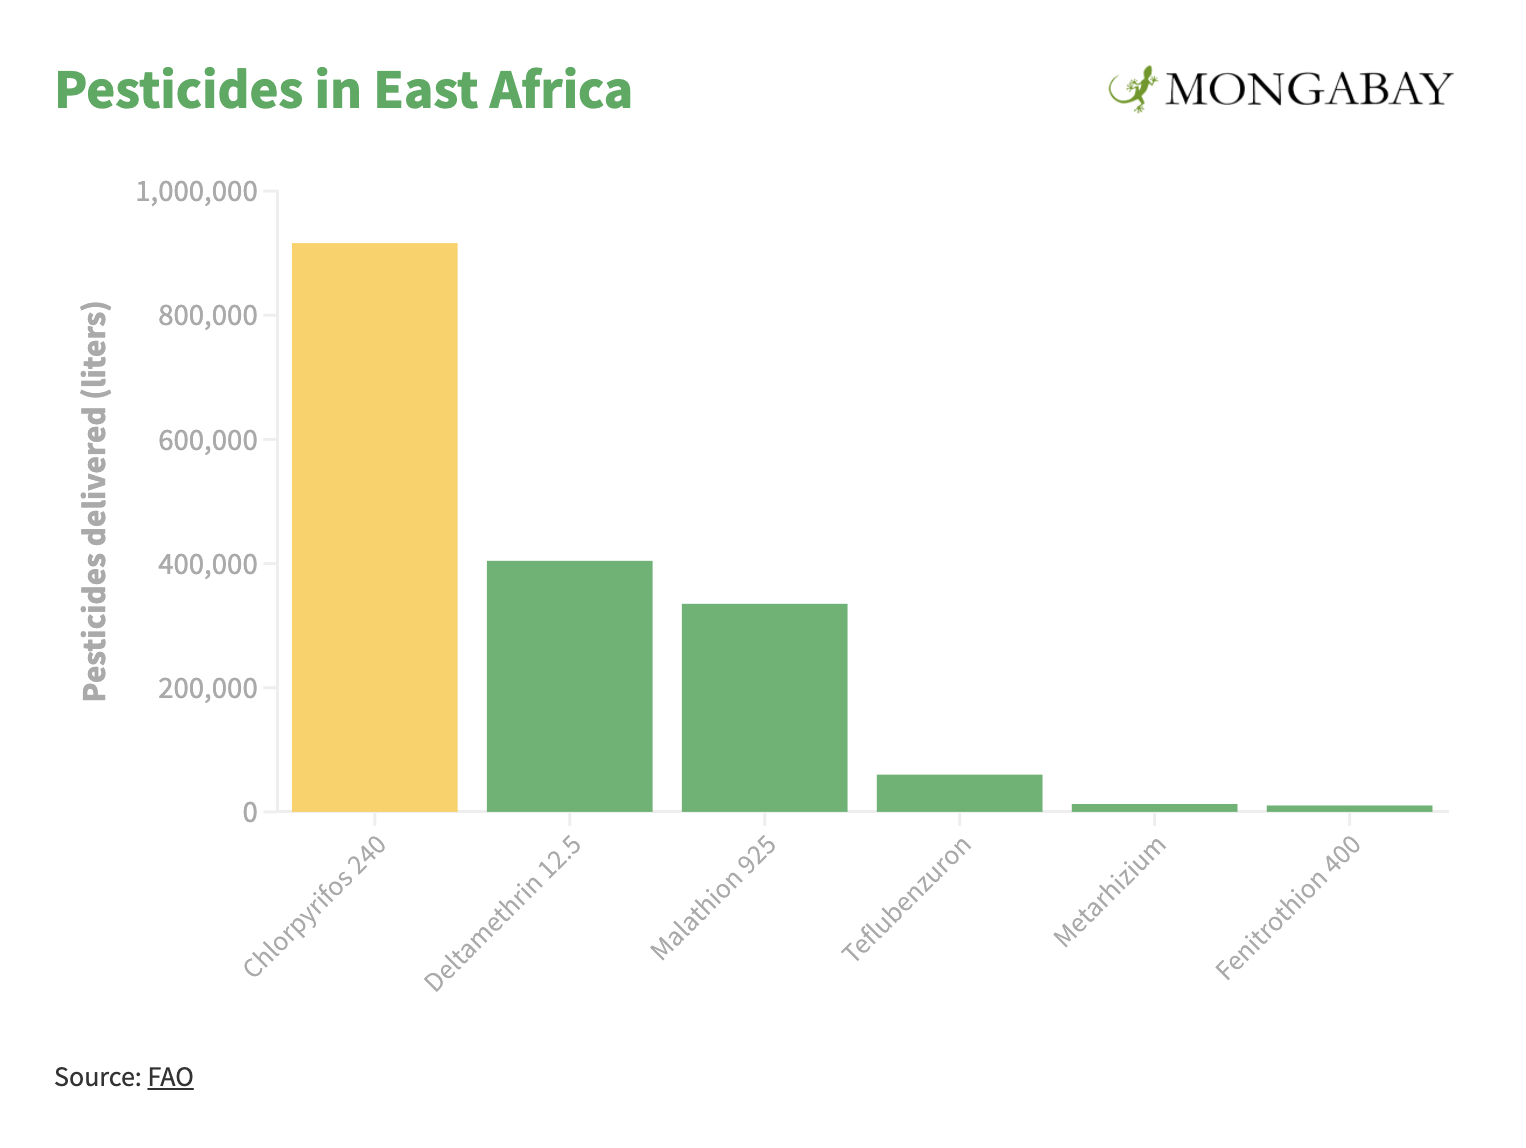 Chart of pesticide use in East Africa